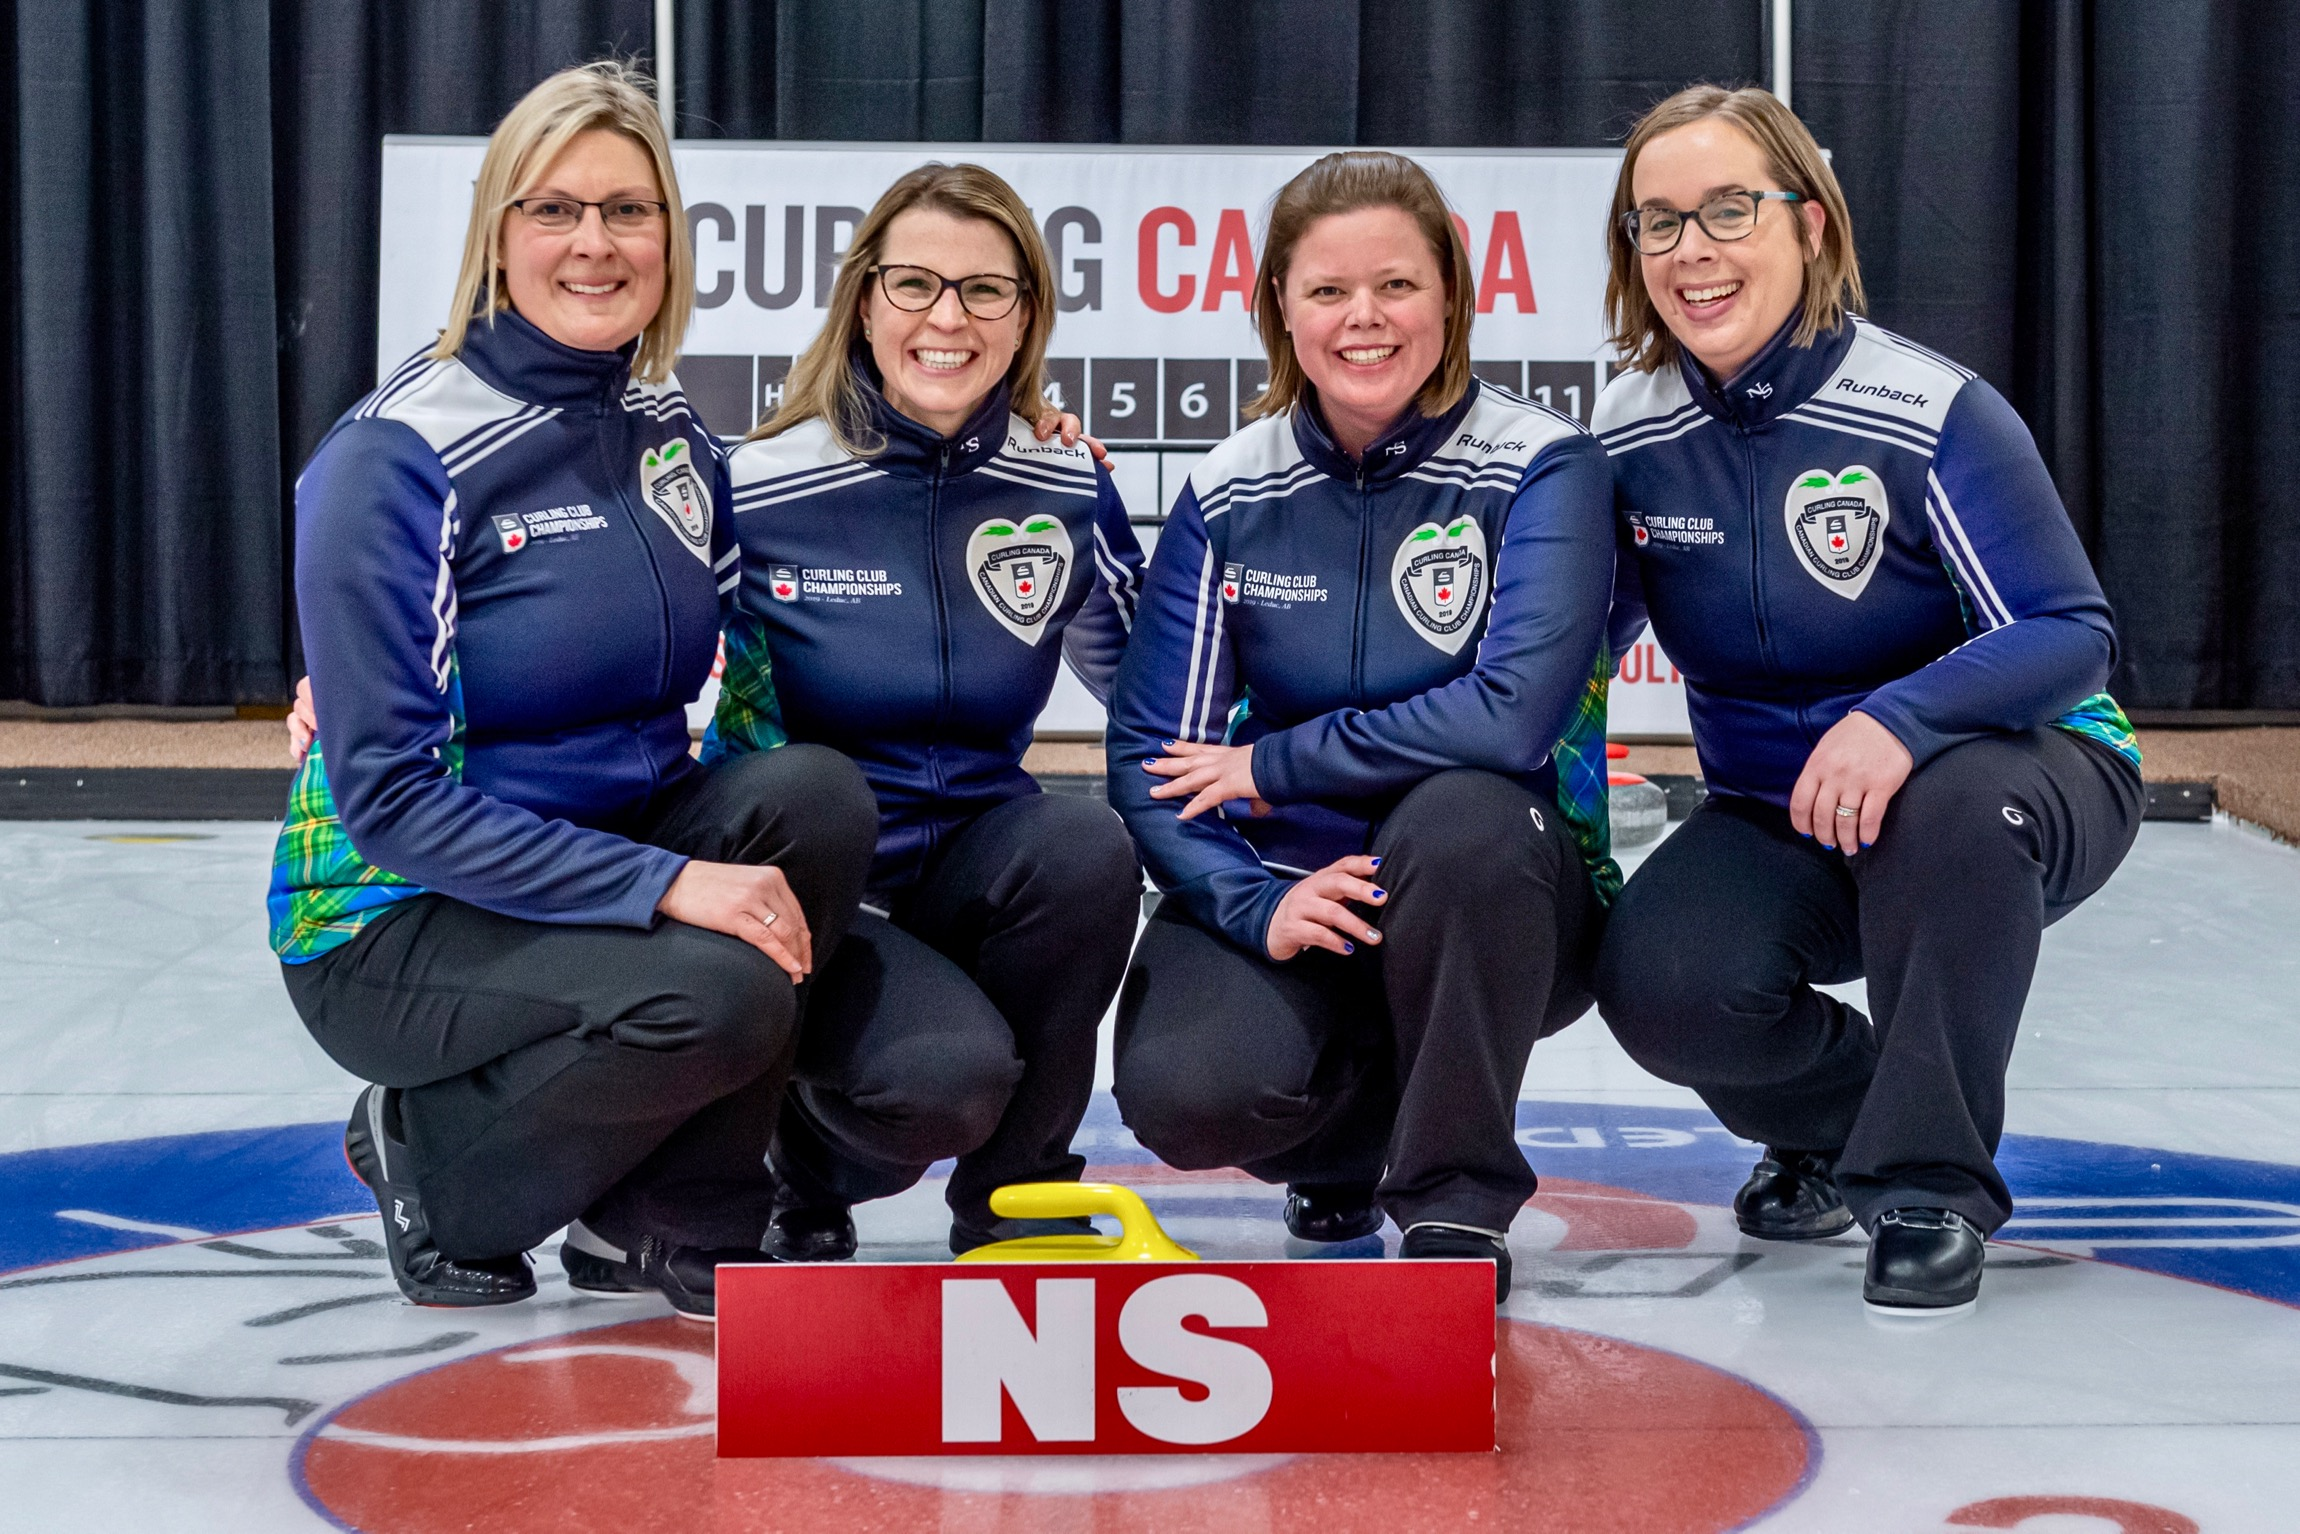 Phillips 2019 Curl Club Champs NS